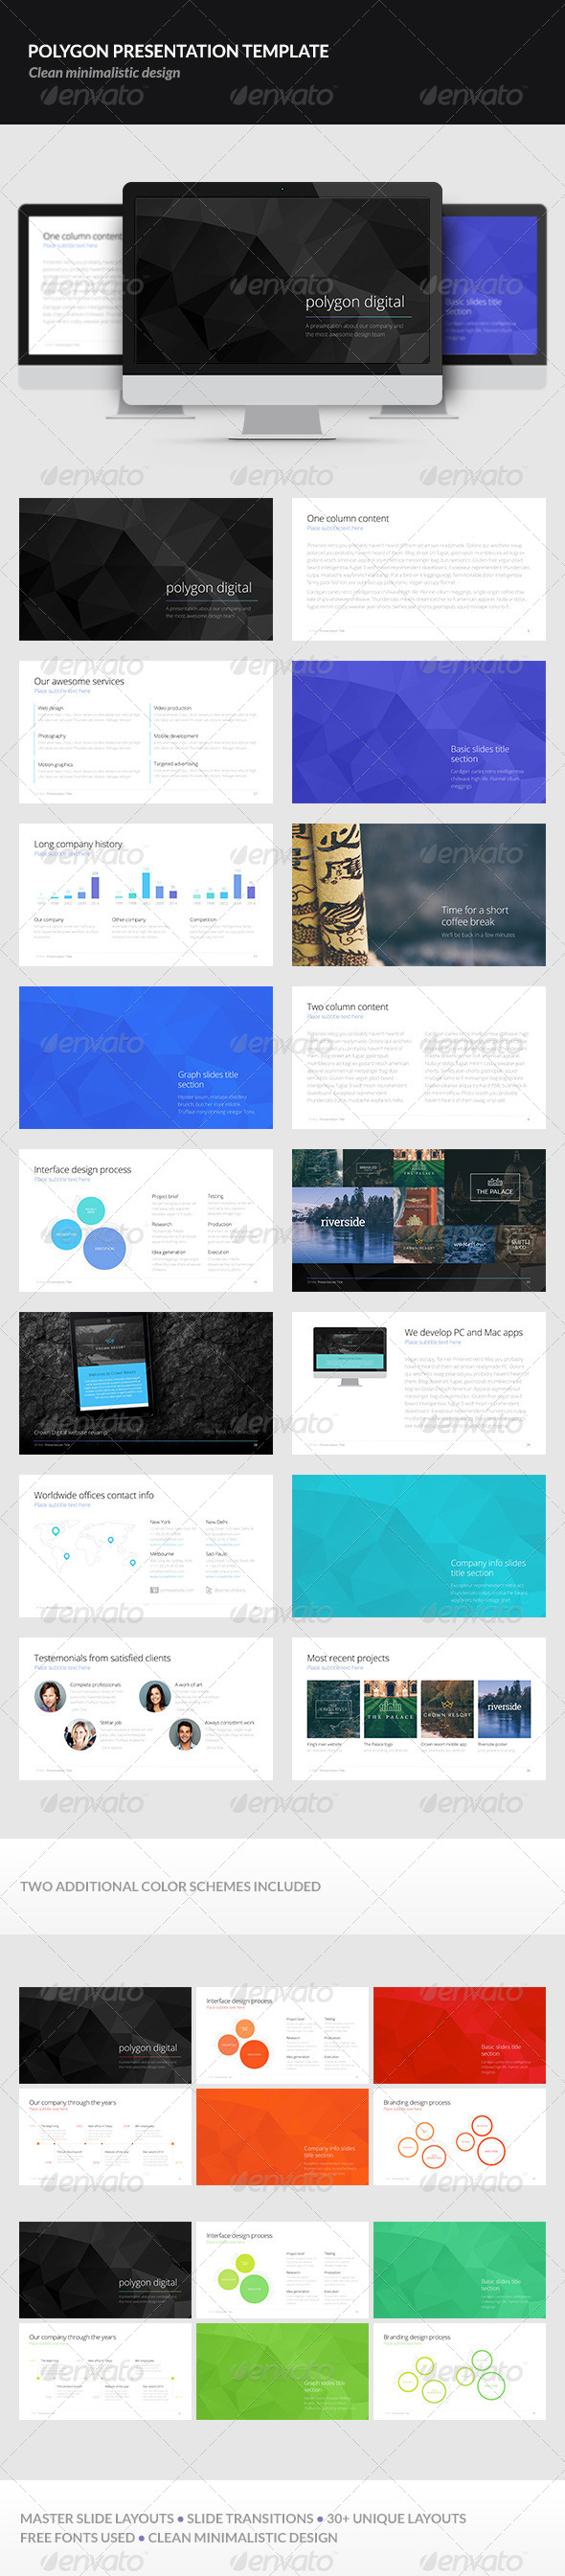 GraphicRiver Polygon Presentation Template 7322858